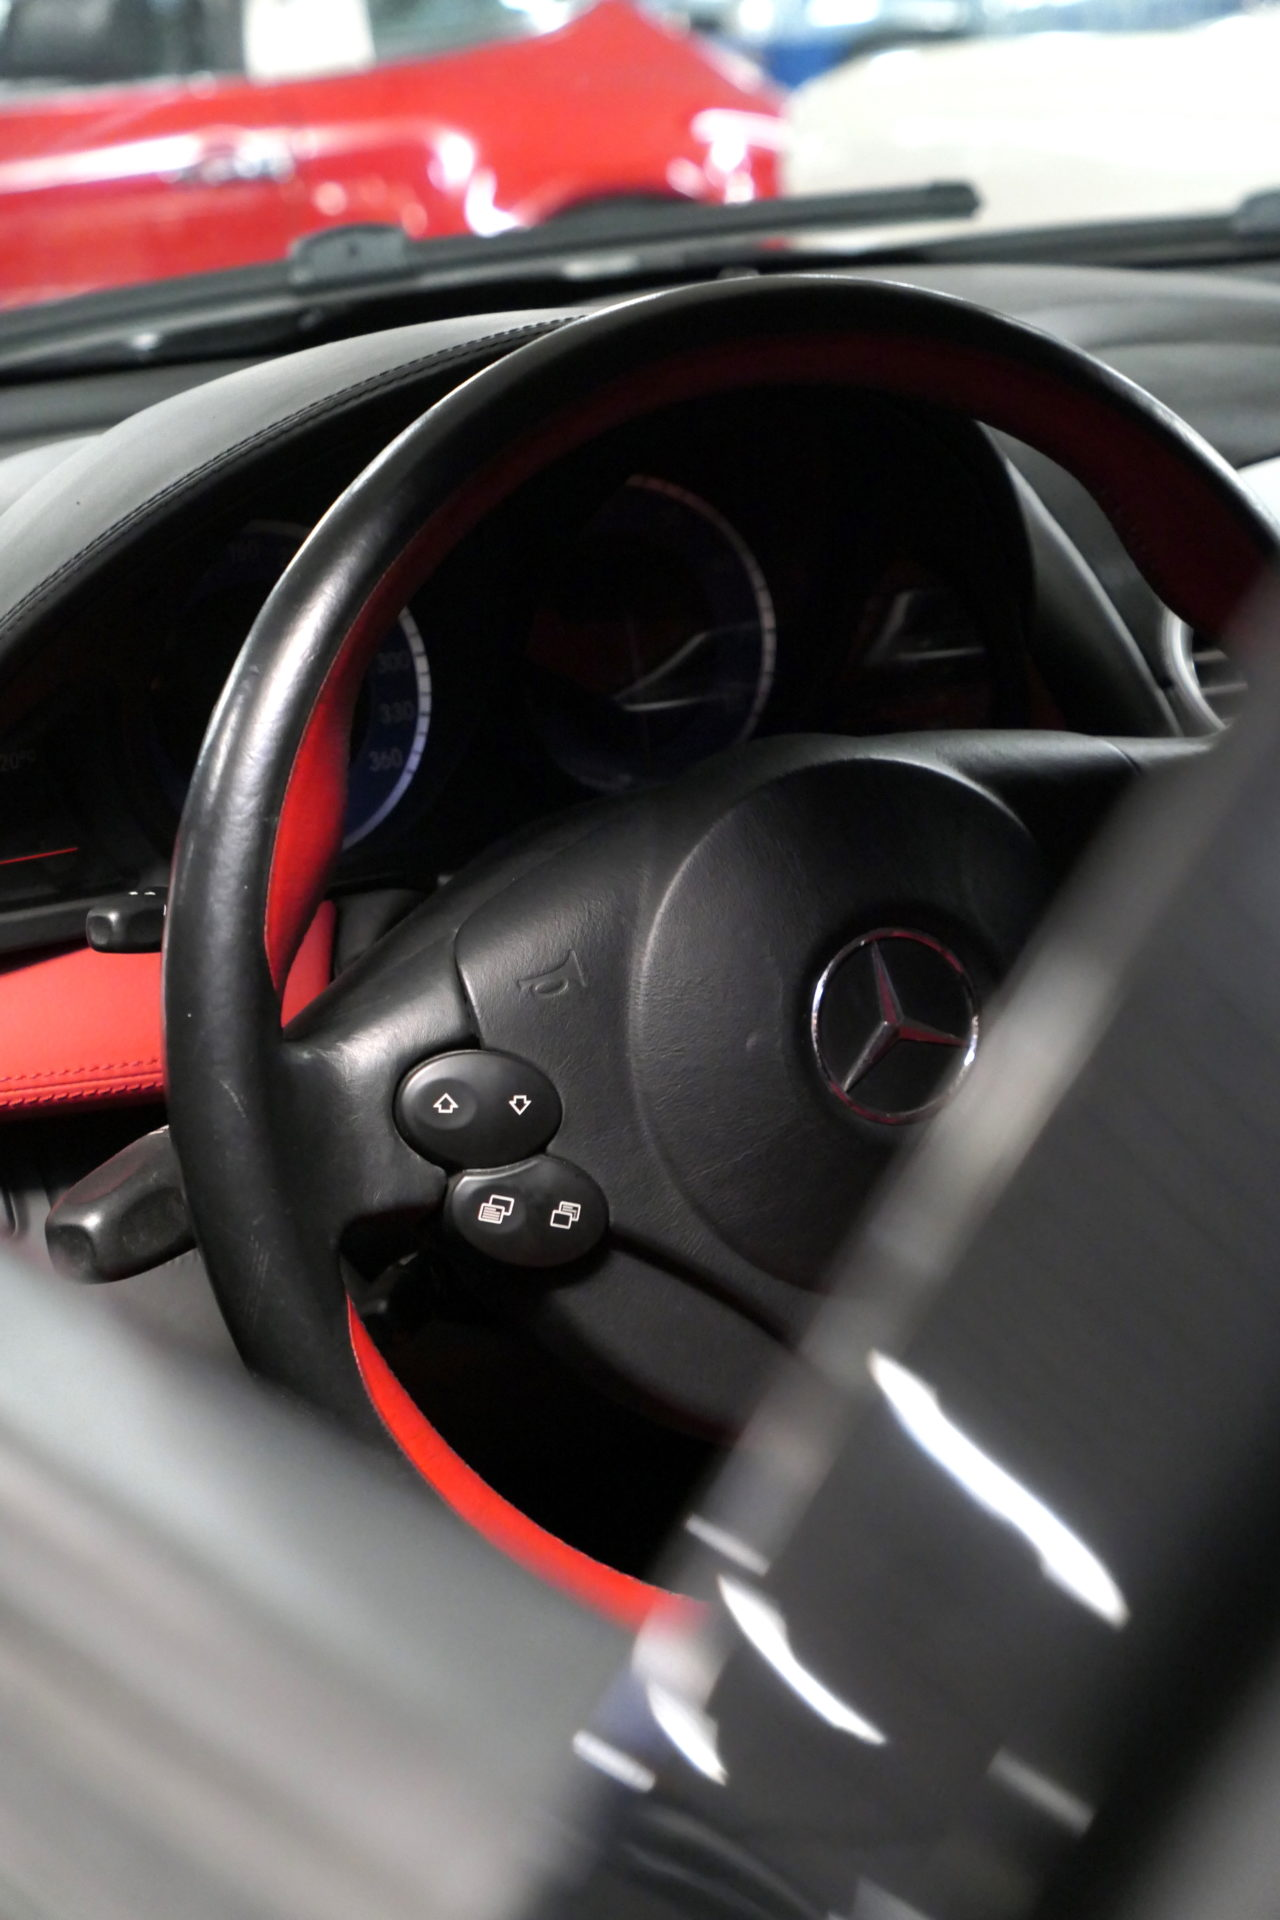 roadrugcars road rug cars artcurial sur les champs mercedes benz mclaren slr steering wheel